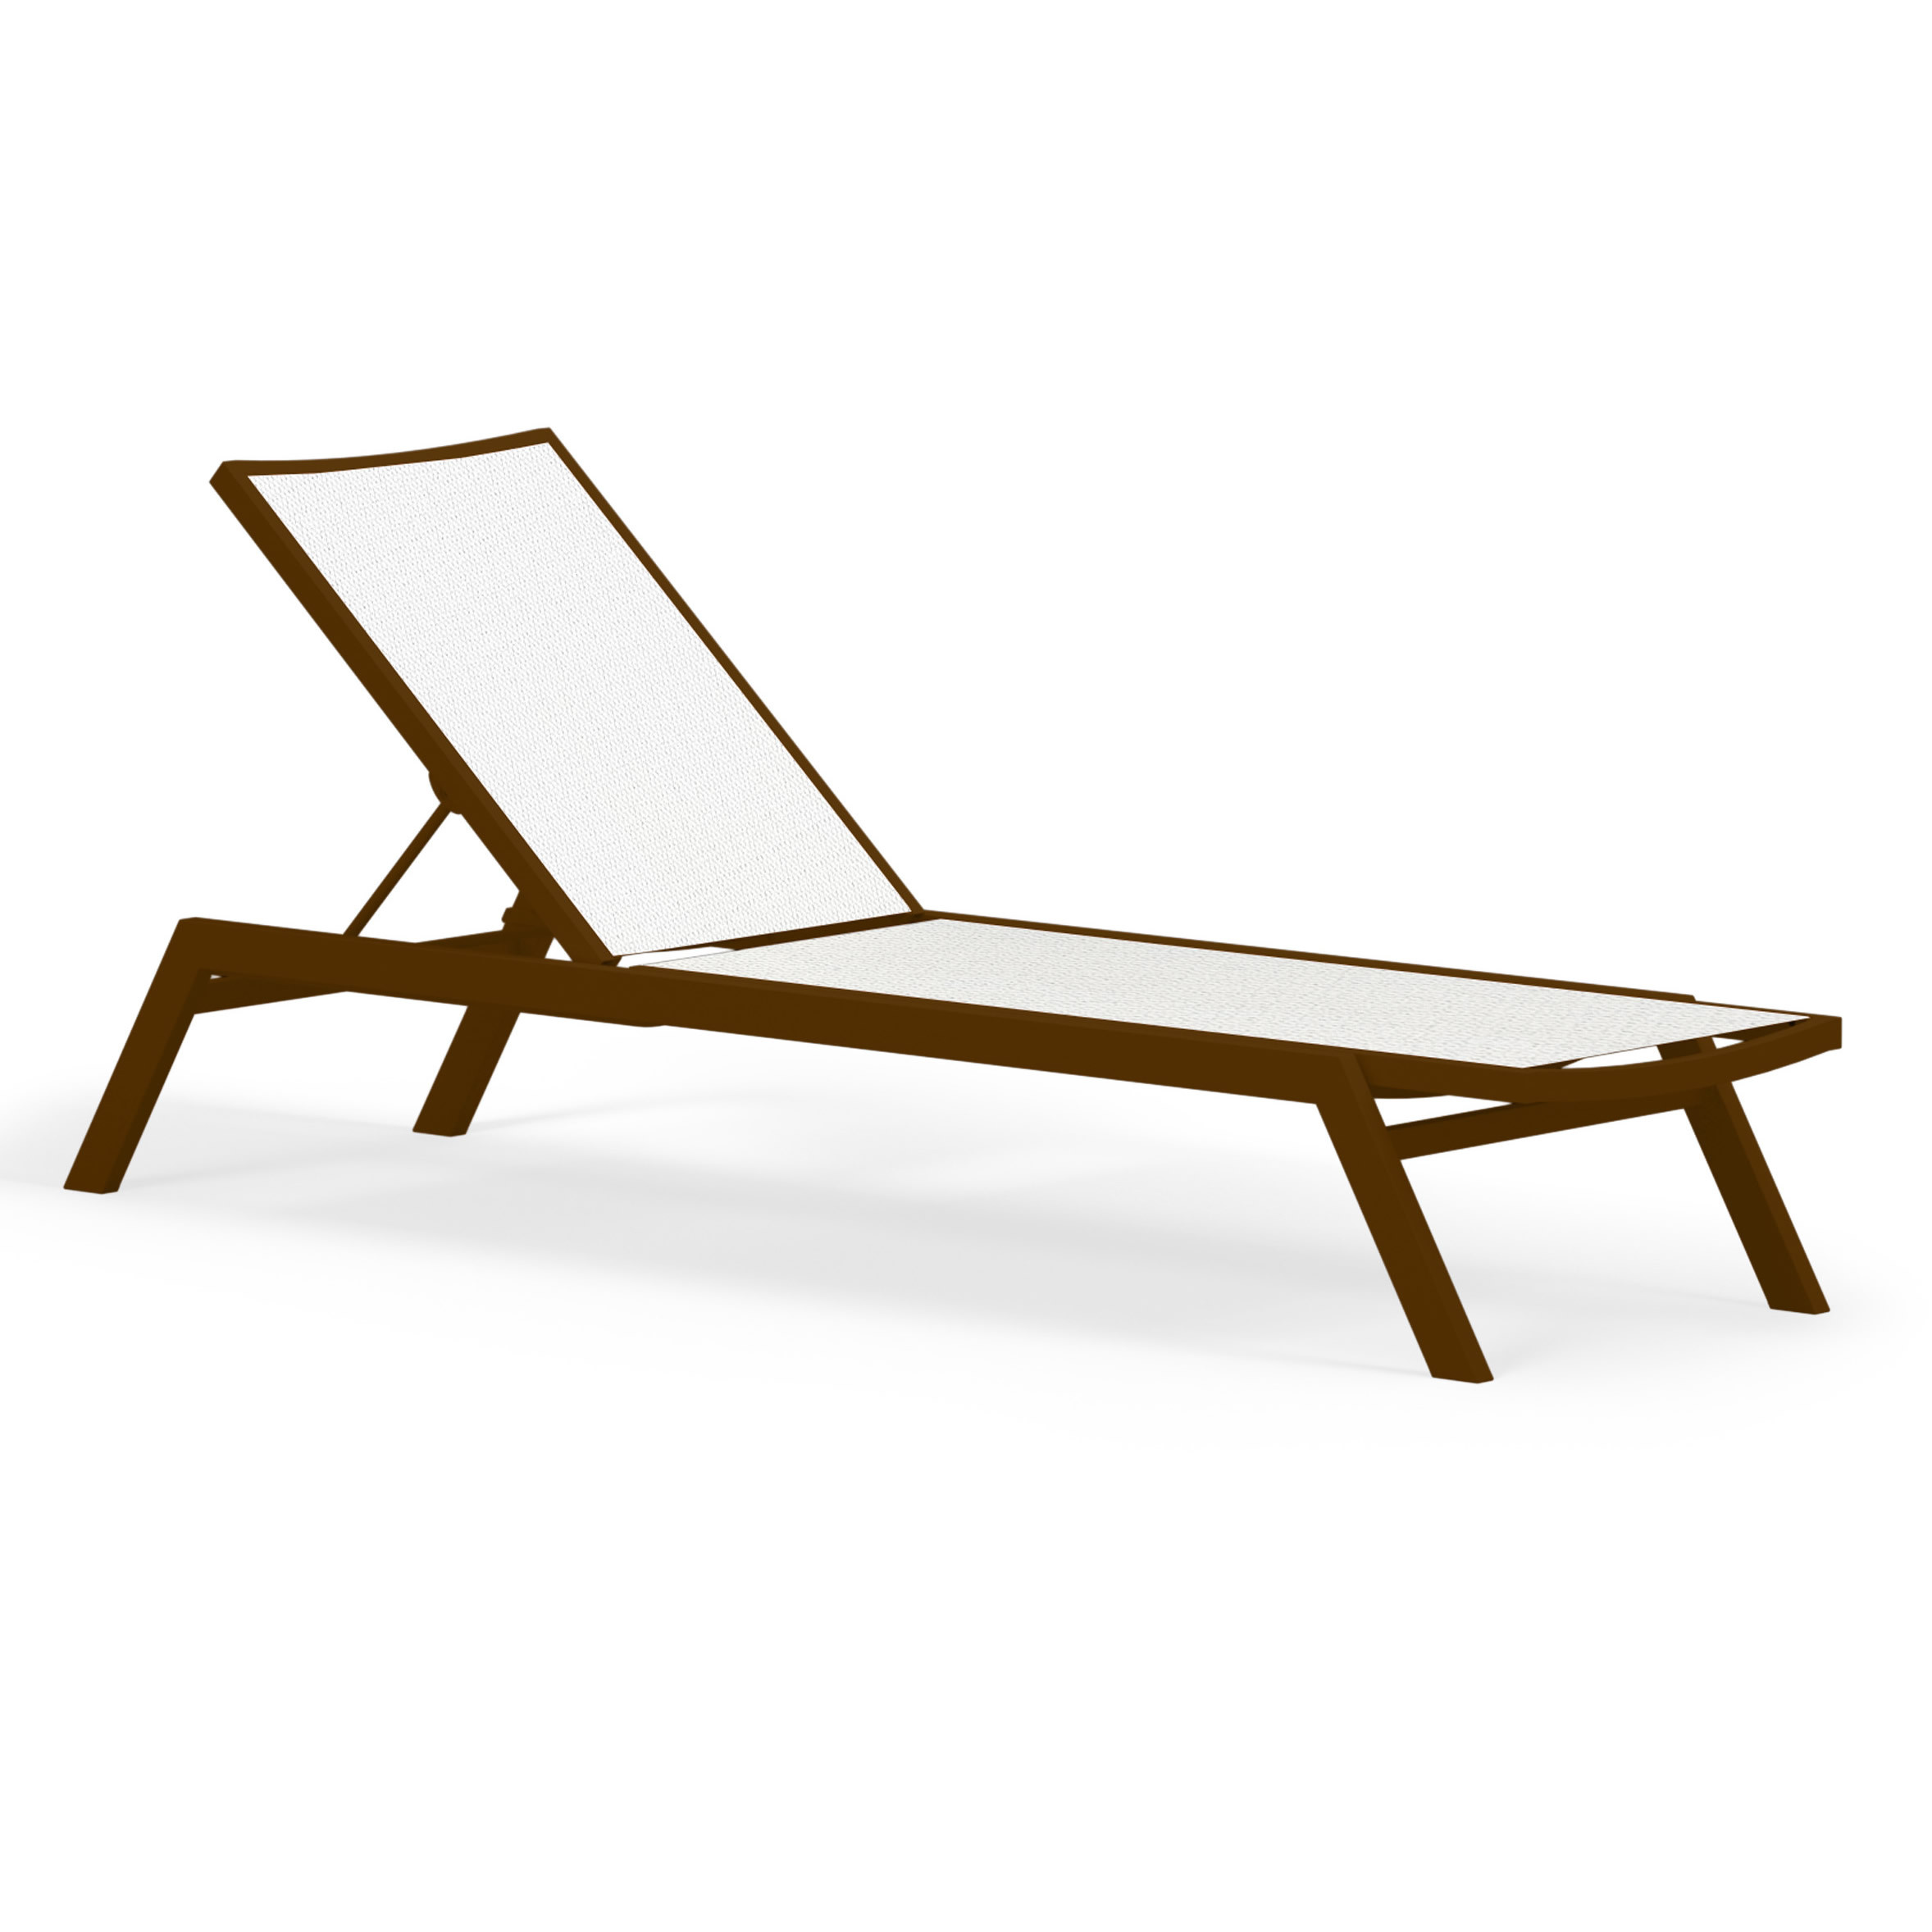 POLYWOOD Bayline Chaise Lounge Chaise Lounge Chairs Chairs